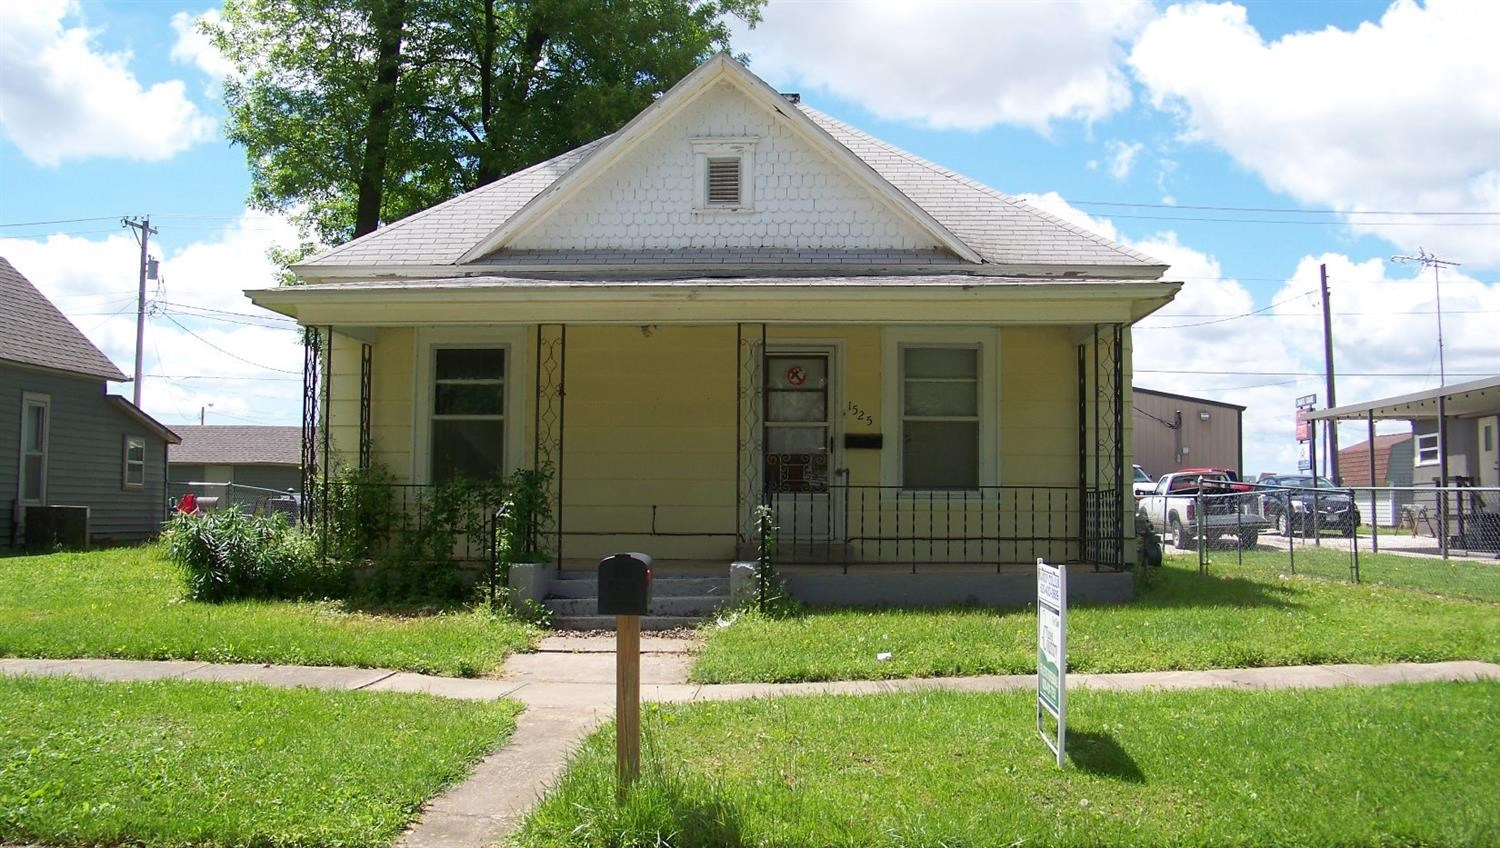 House for Sale Chanute, Kansas